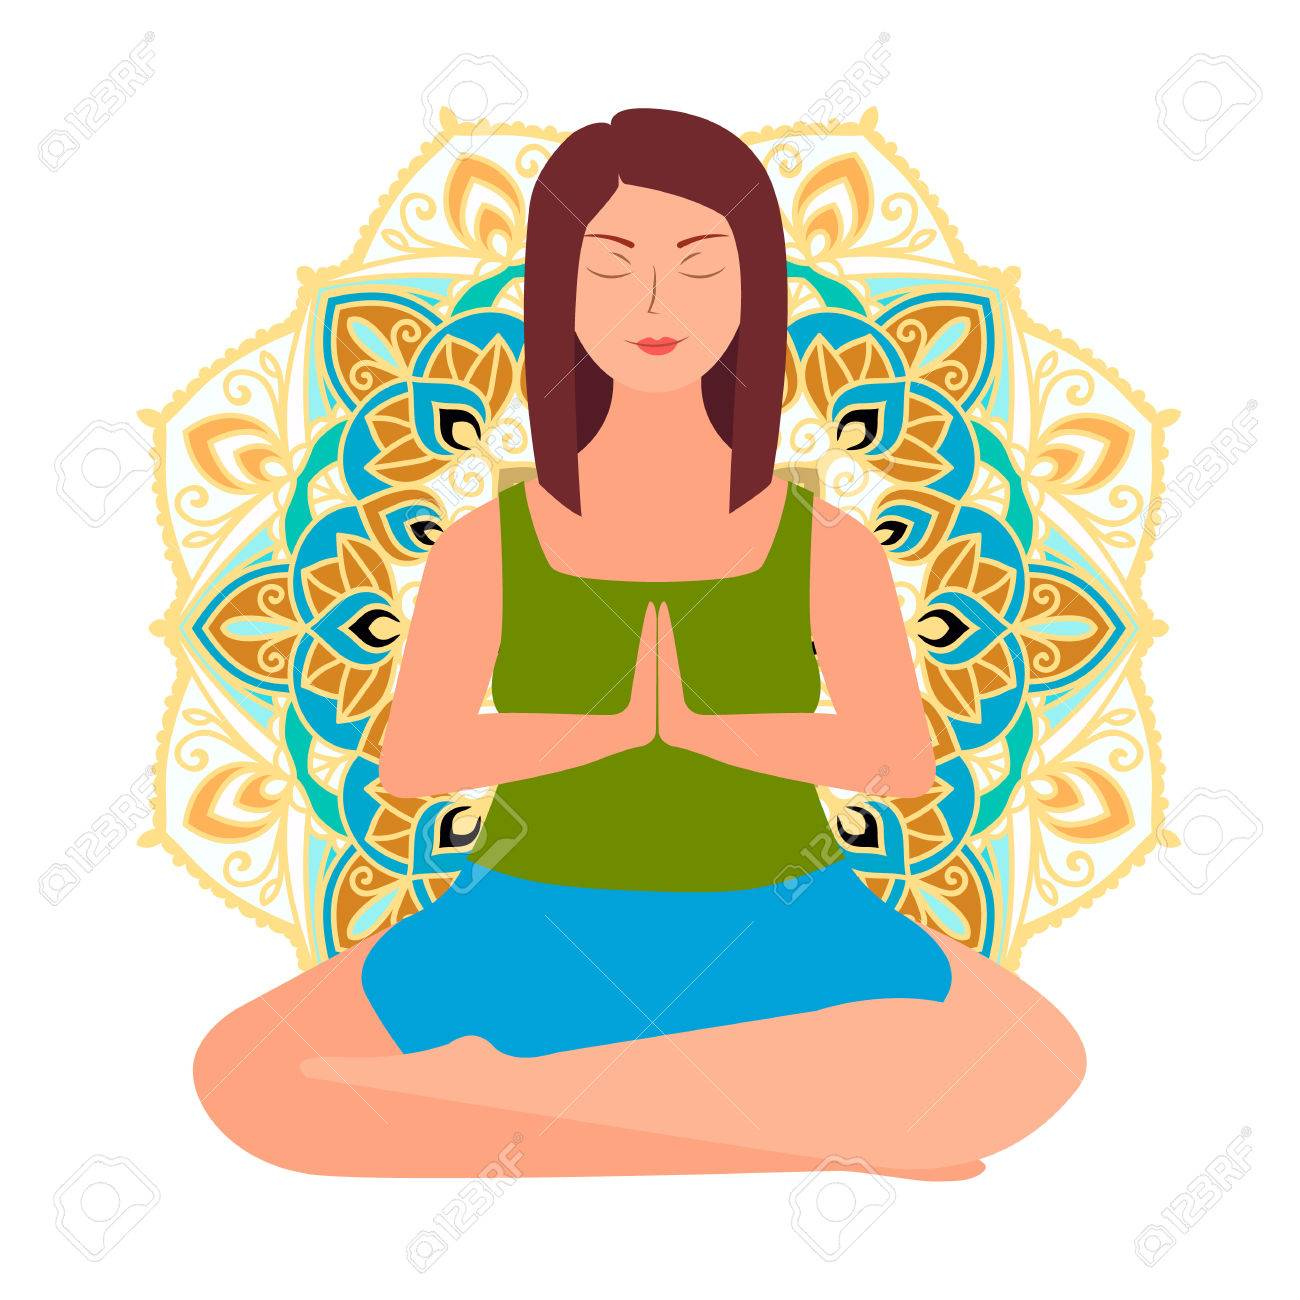 Image result for plus size meditation